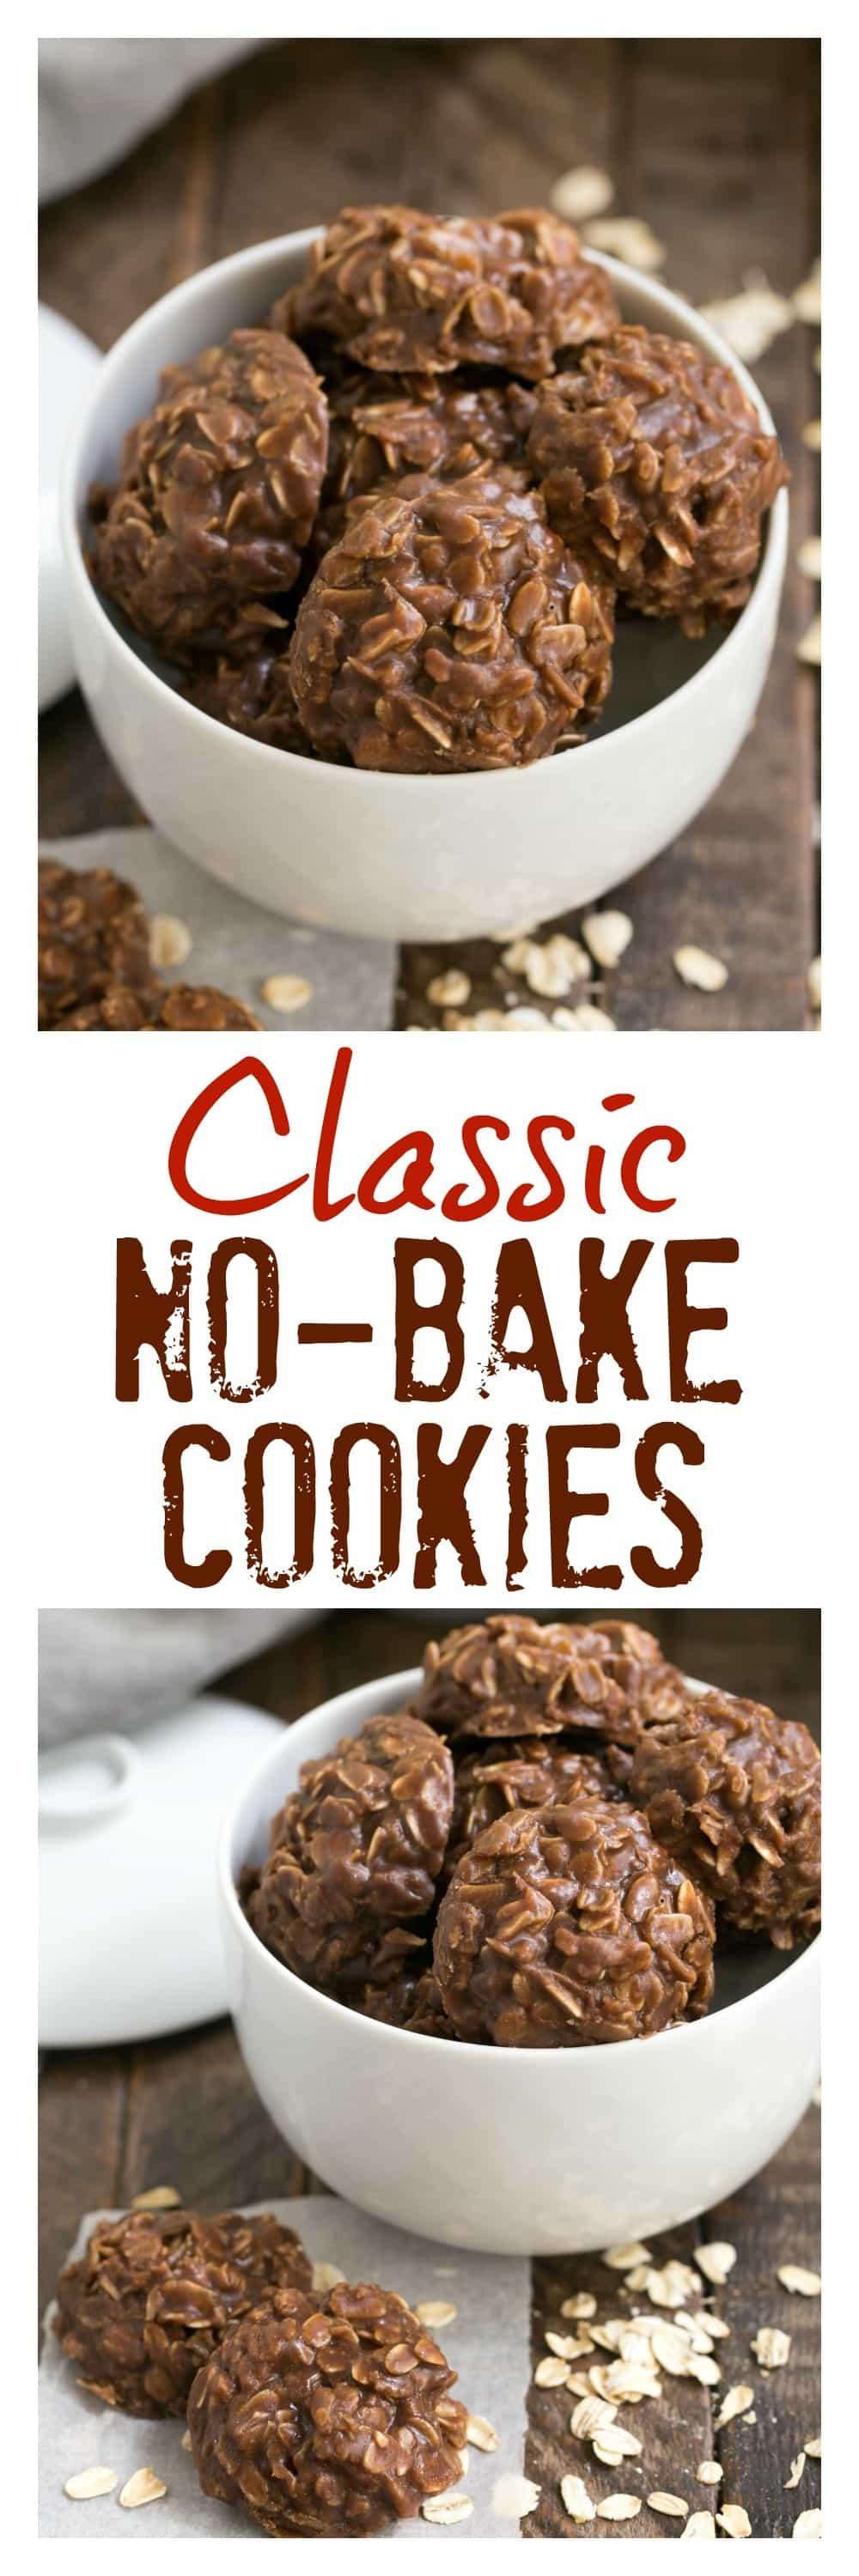 Classic Chocolate Peanut Butter No Bake Cookies - SO easy and always a hit! Plus no oven needed! #nobake #cookies #chocolate #peanutbutter